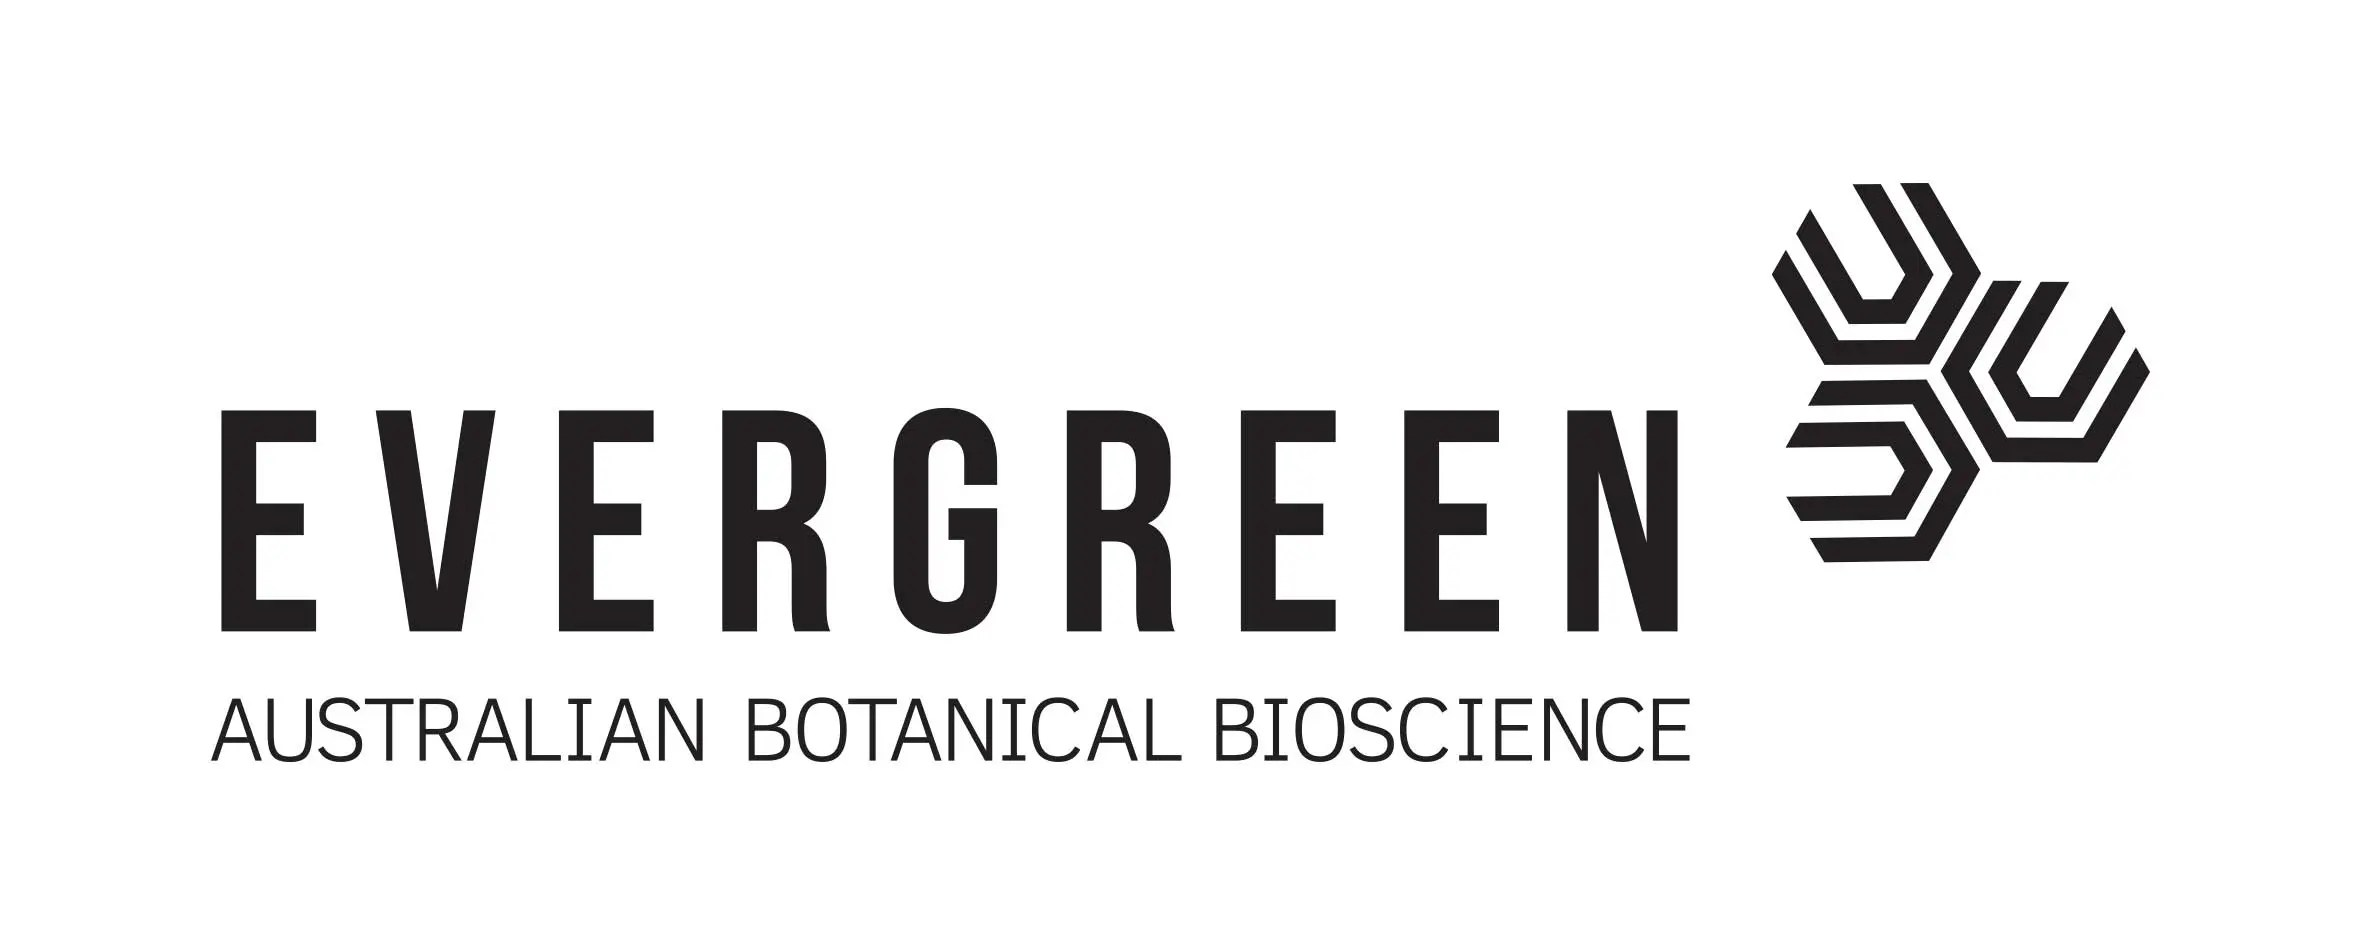 Evergreen - Australian Botanical Bioscience